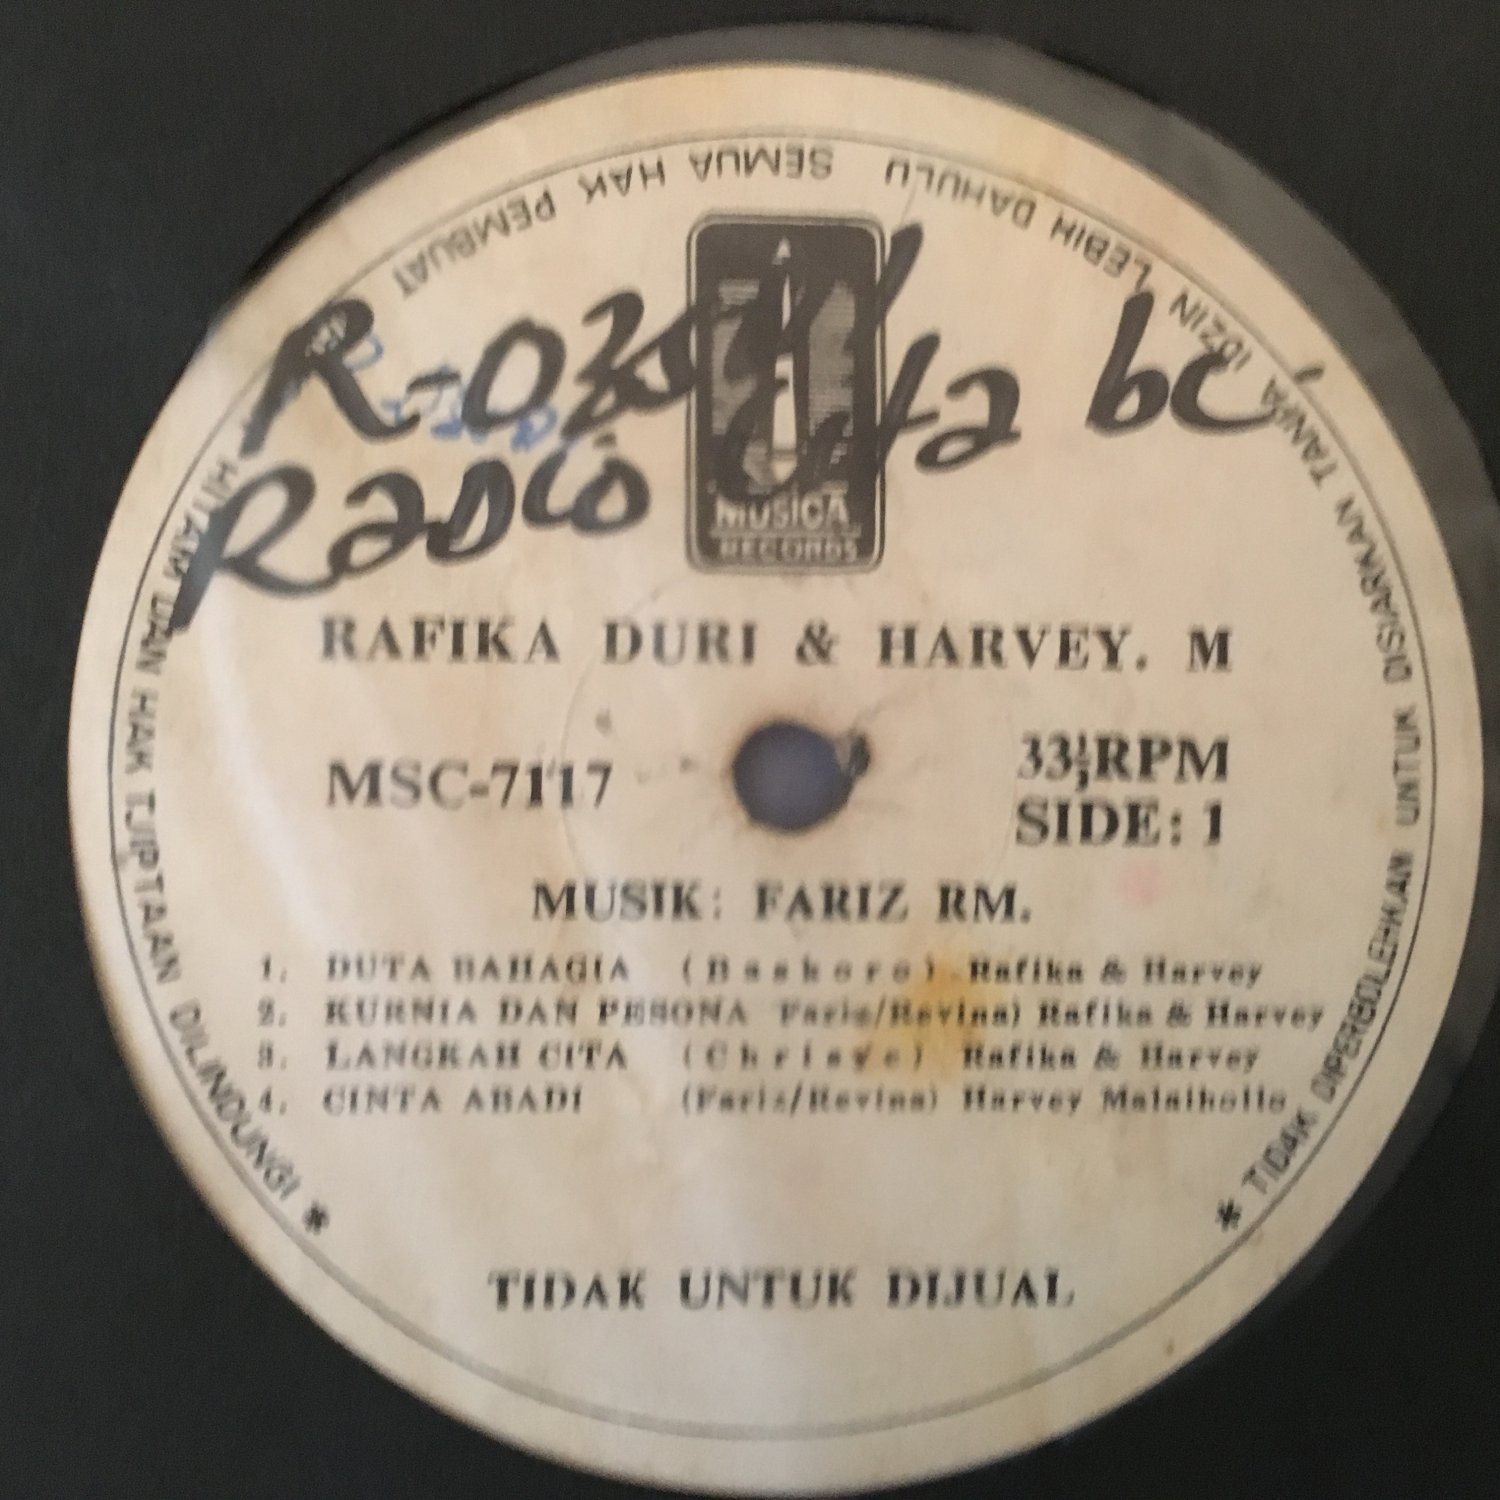 RAFIKA DURI & HARVEY M. LP same RARE INDONESIA FUNK FARIZ RM mp3 LISTEN